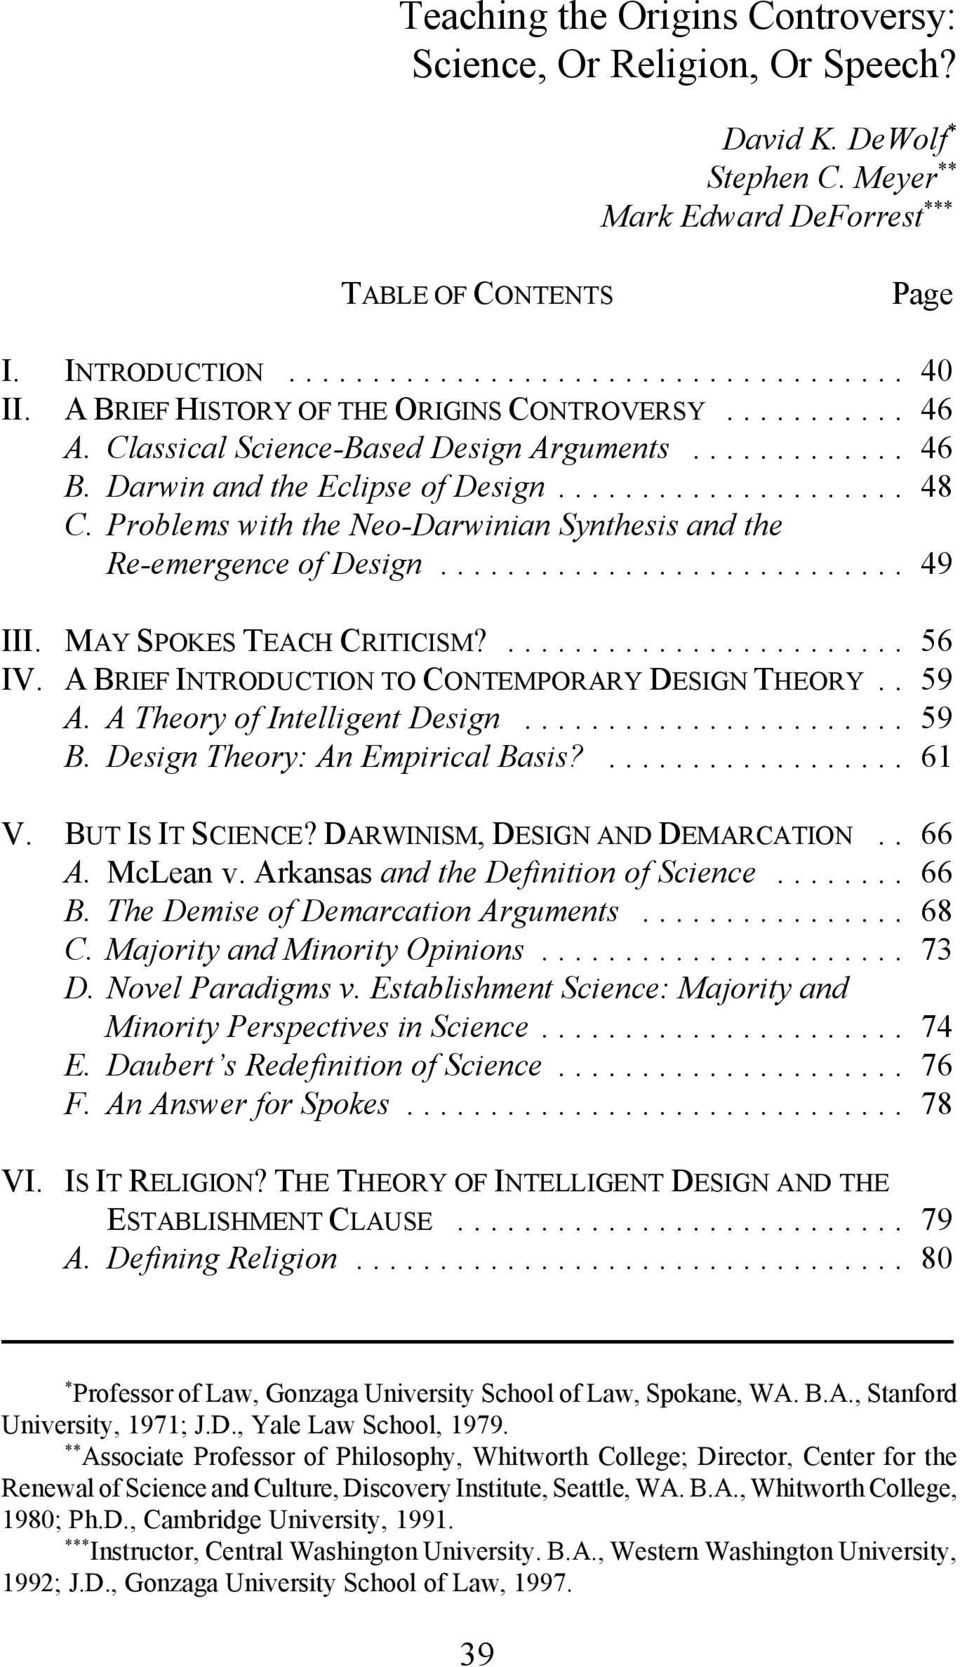 Problems with the Neo-Darwinian Synthesis and the Re-emergence of Design... 49 III. MAY SPOKES TEACH CRITICISM?... 56 IV. A BRIEF INTRODUCTION TO CONTEMPORARY DESIGN THEORY.. 59 A.